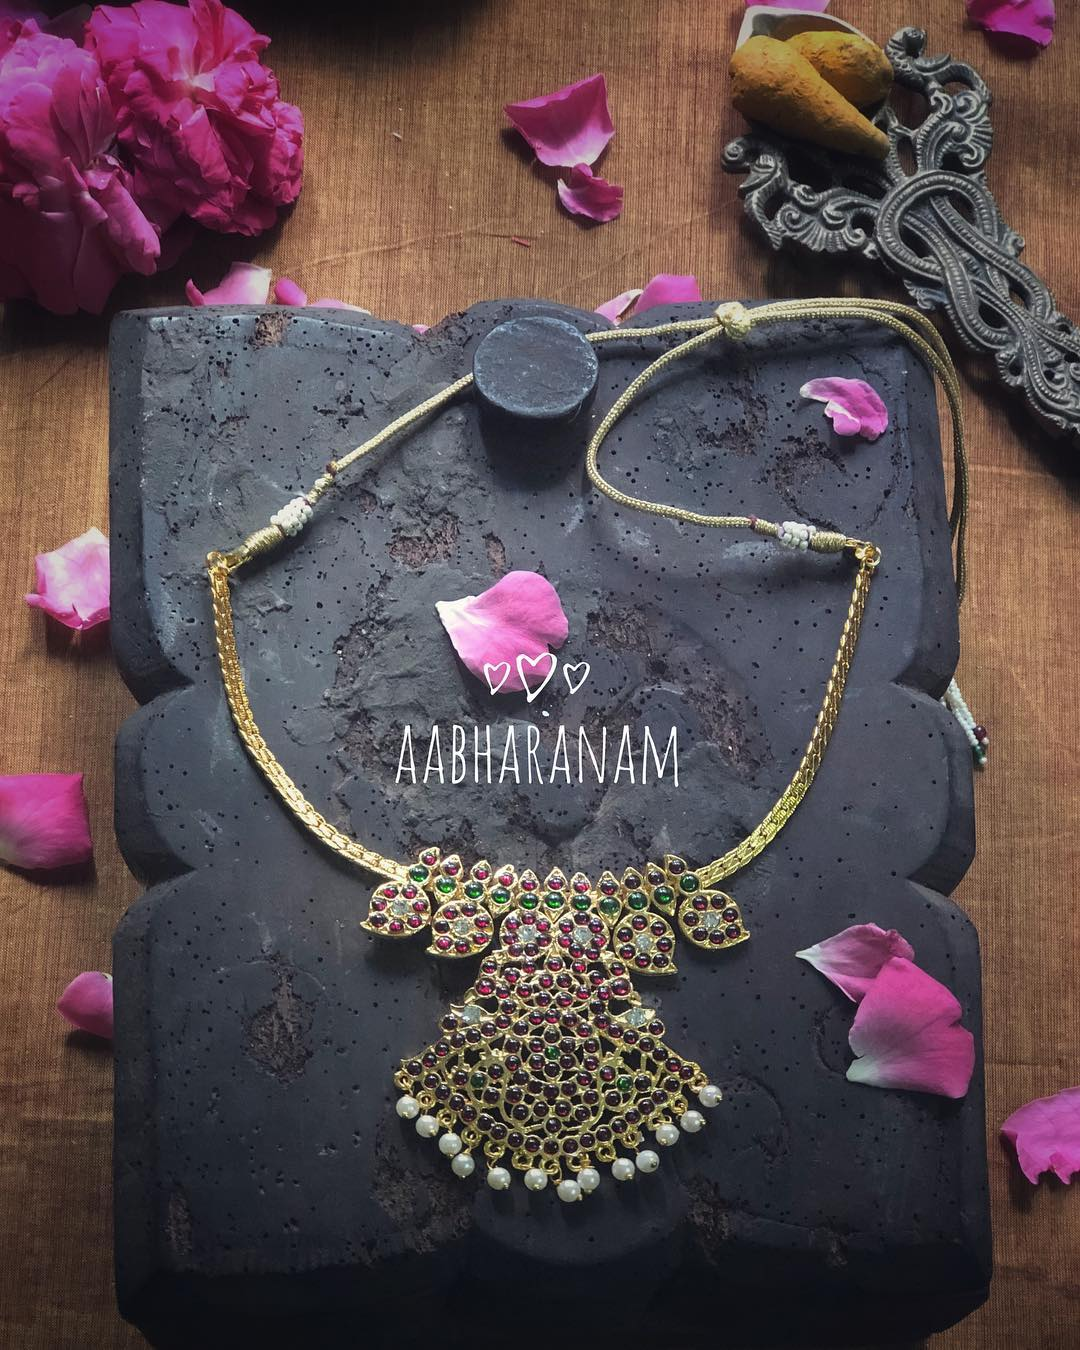 Artificial Choker From Abharanam